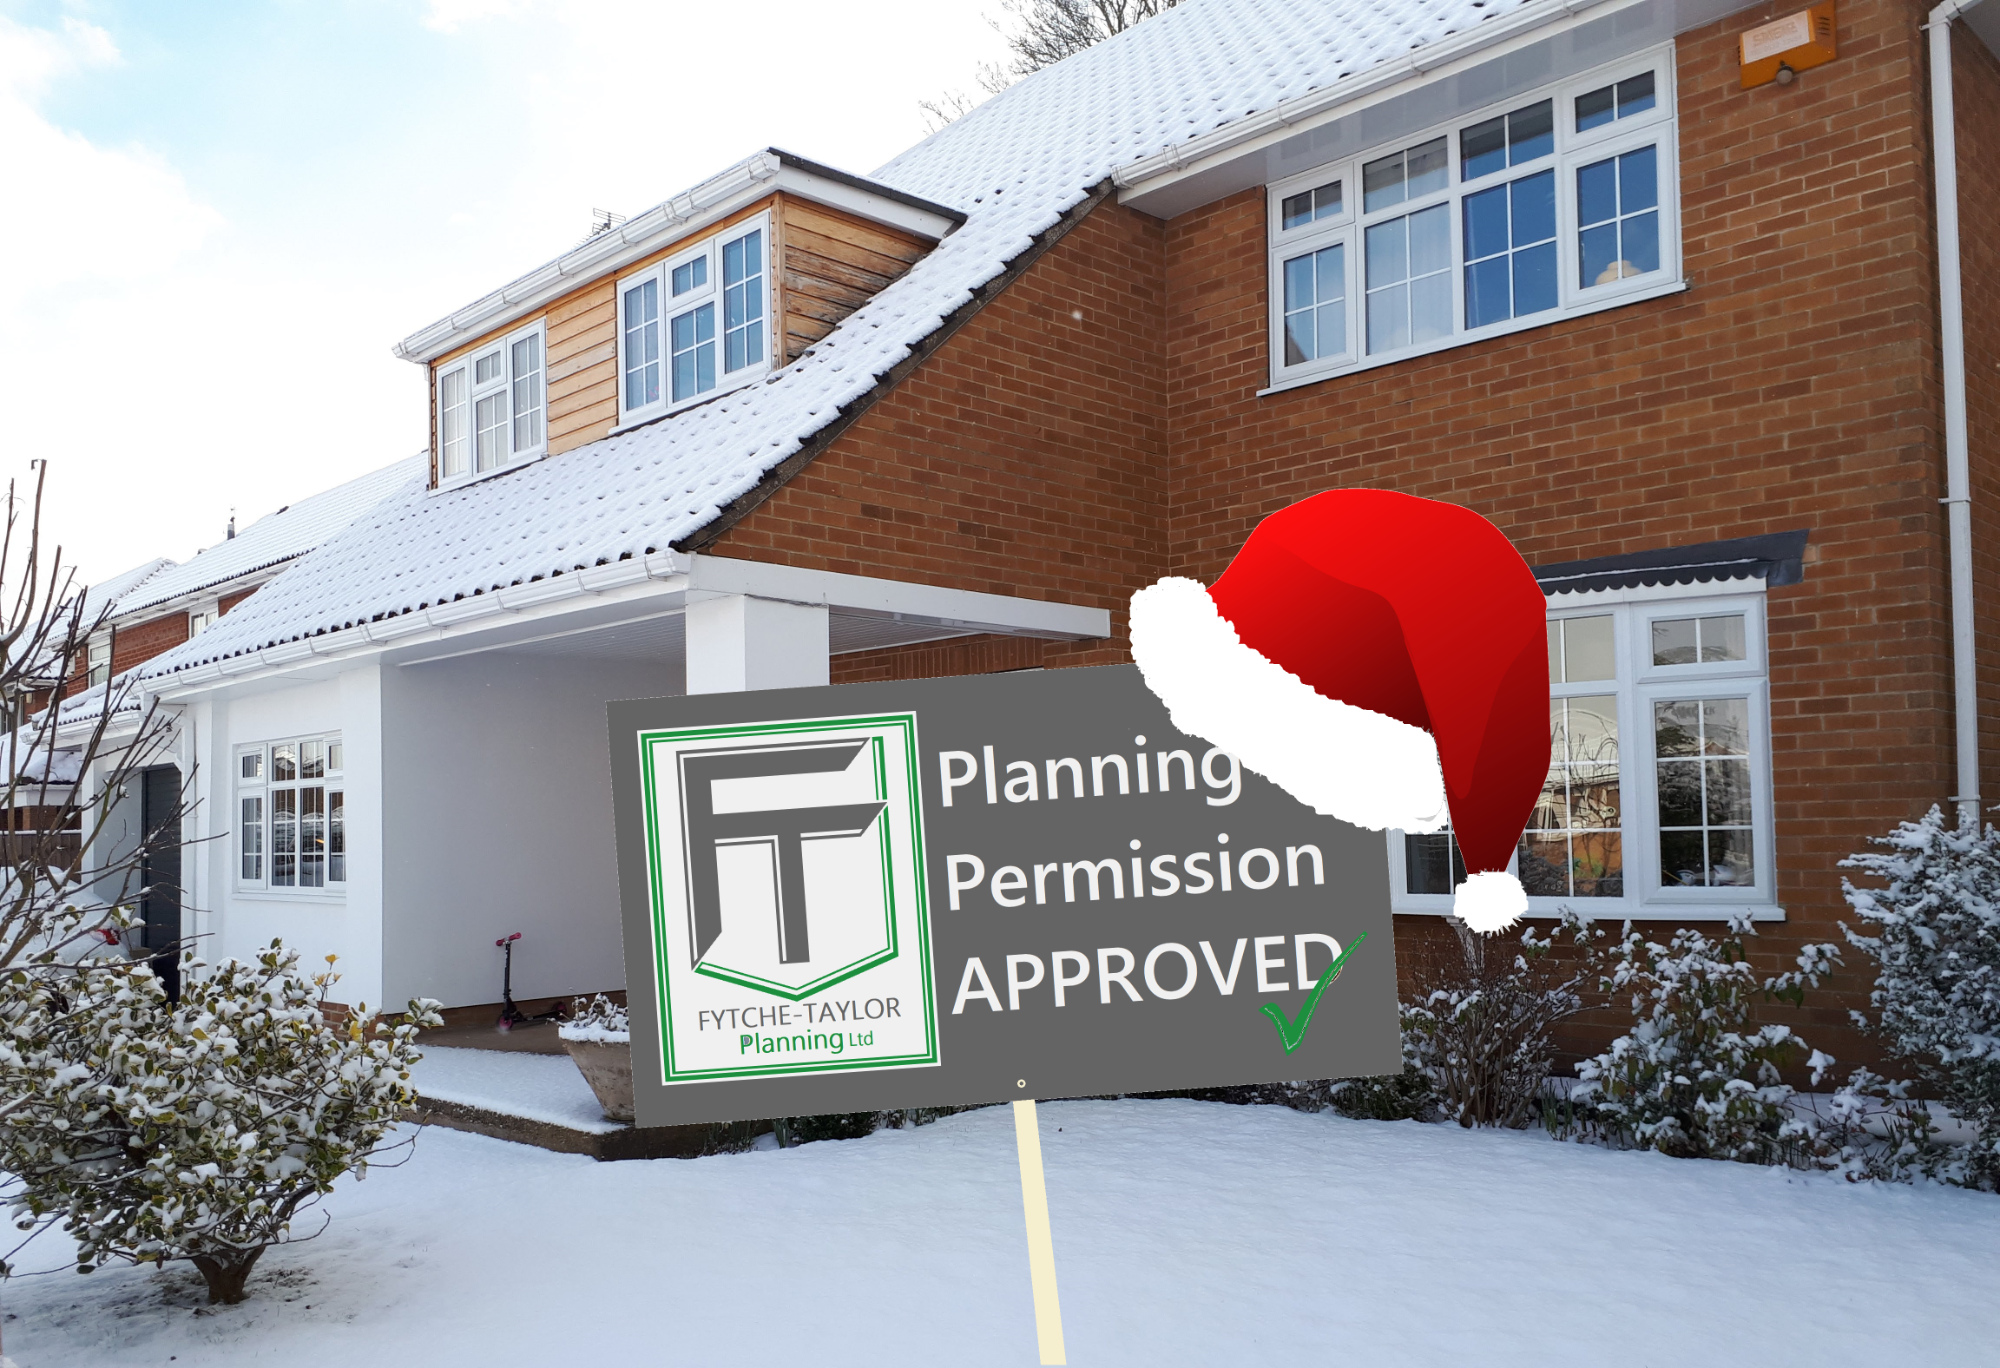 Fytche-Taylor Planning Christmas Hours Planning Consultant Lincoln